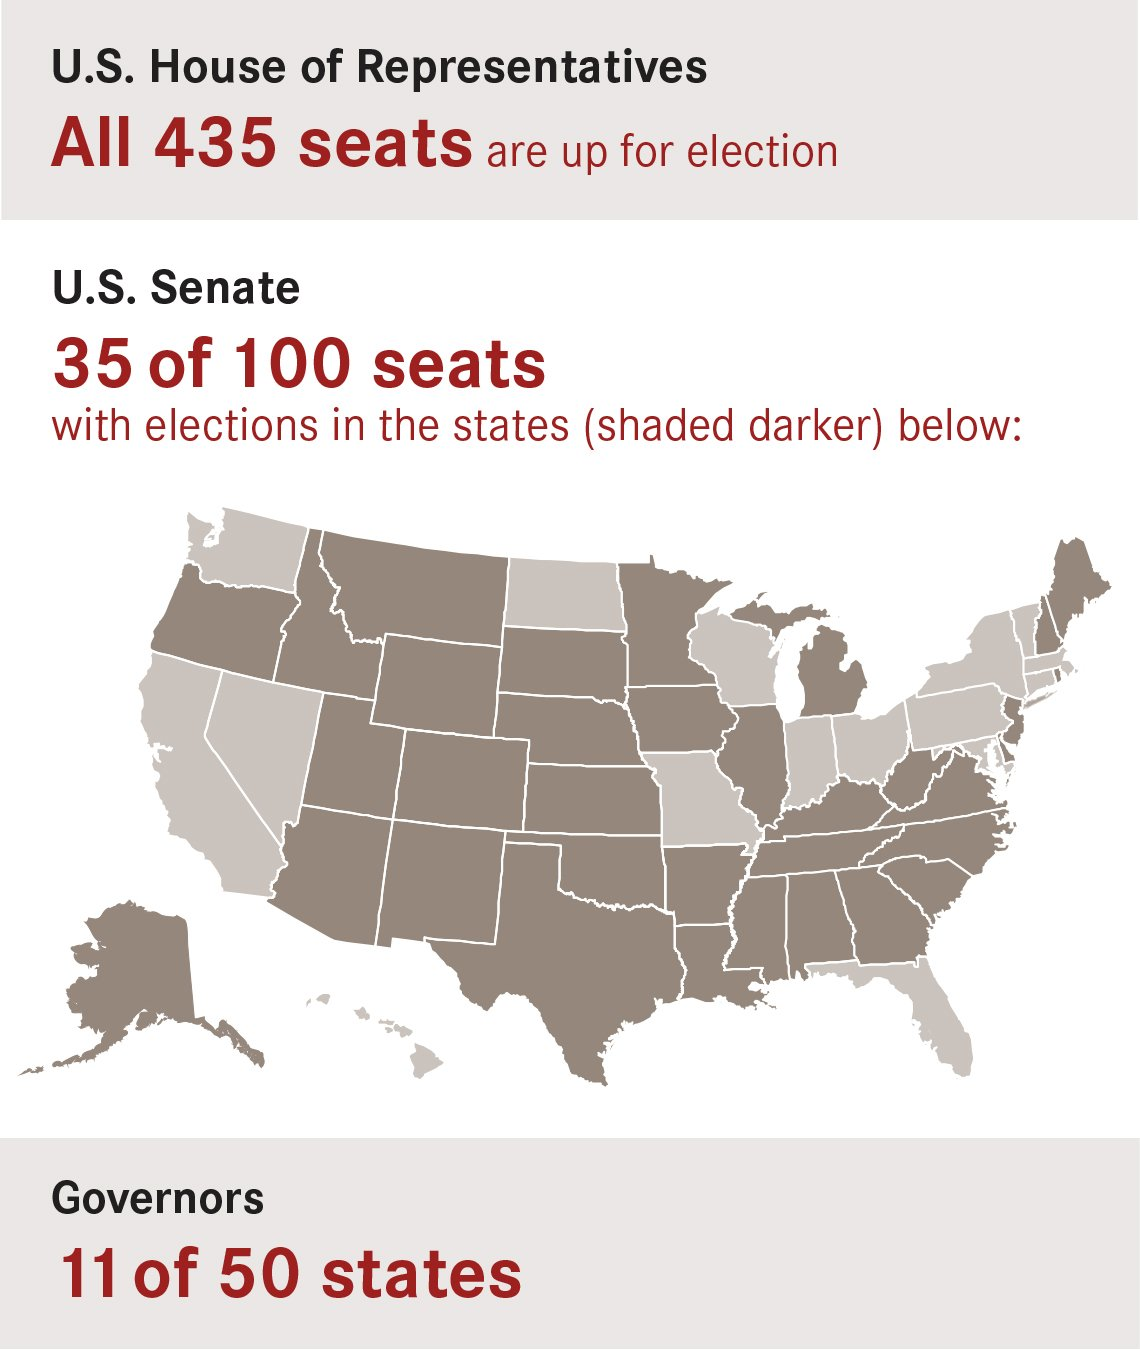 infographic that shows seats up for election in 2020 are all 435 house seats 35 of 100 senate seats and 11 of 50 governor roles